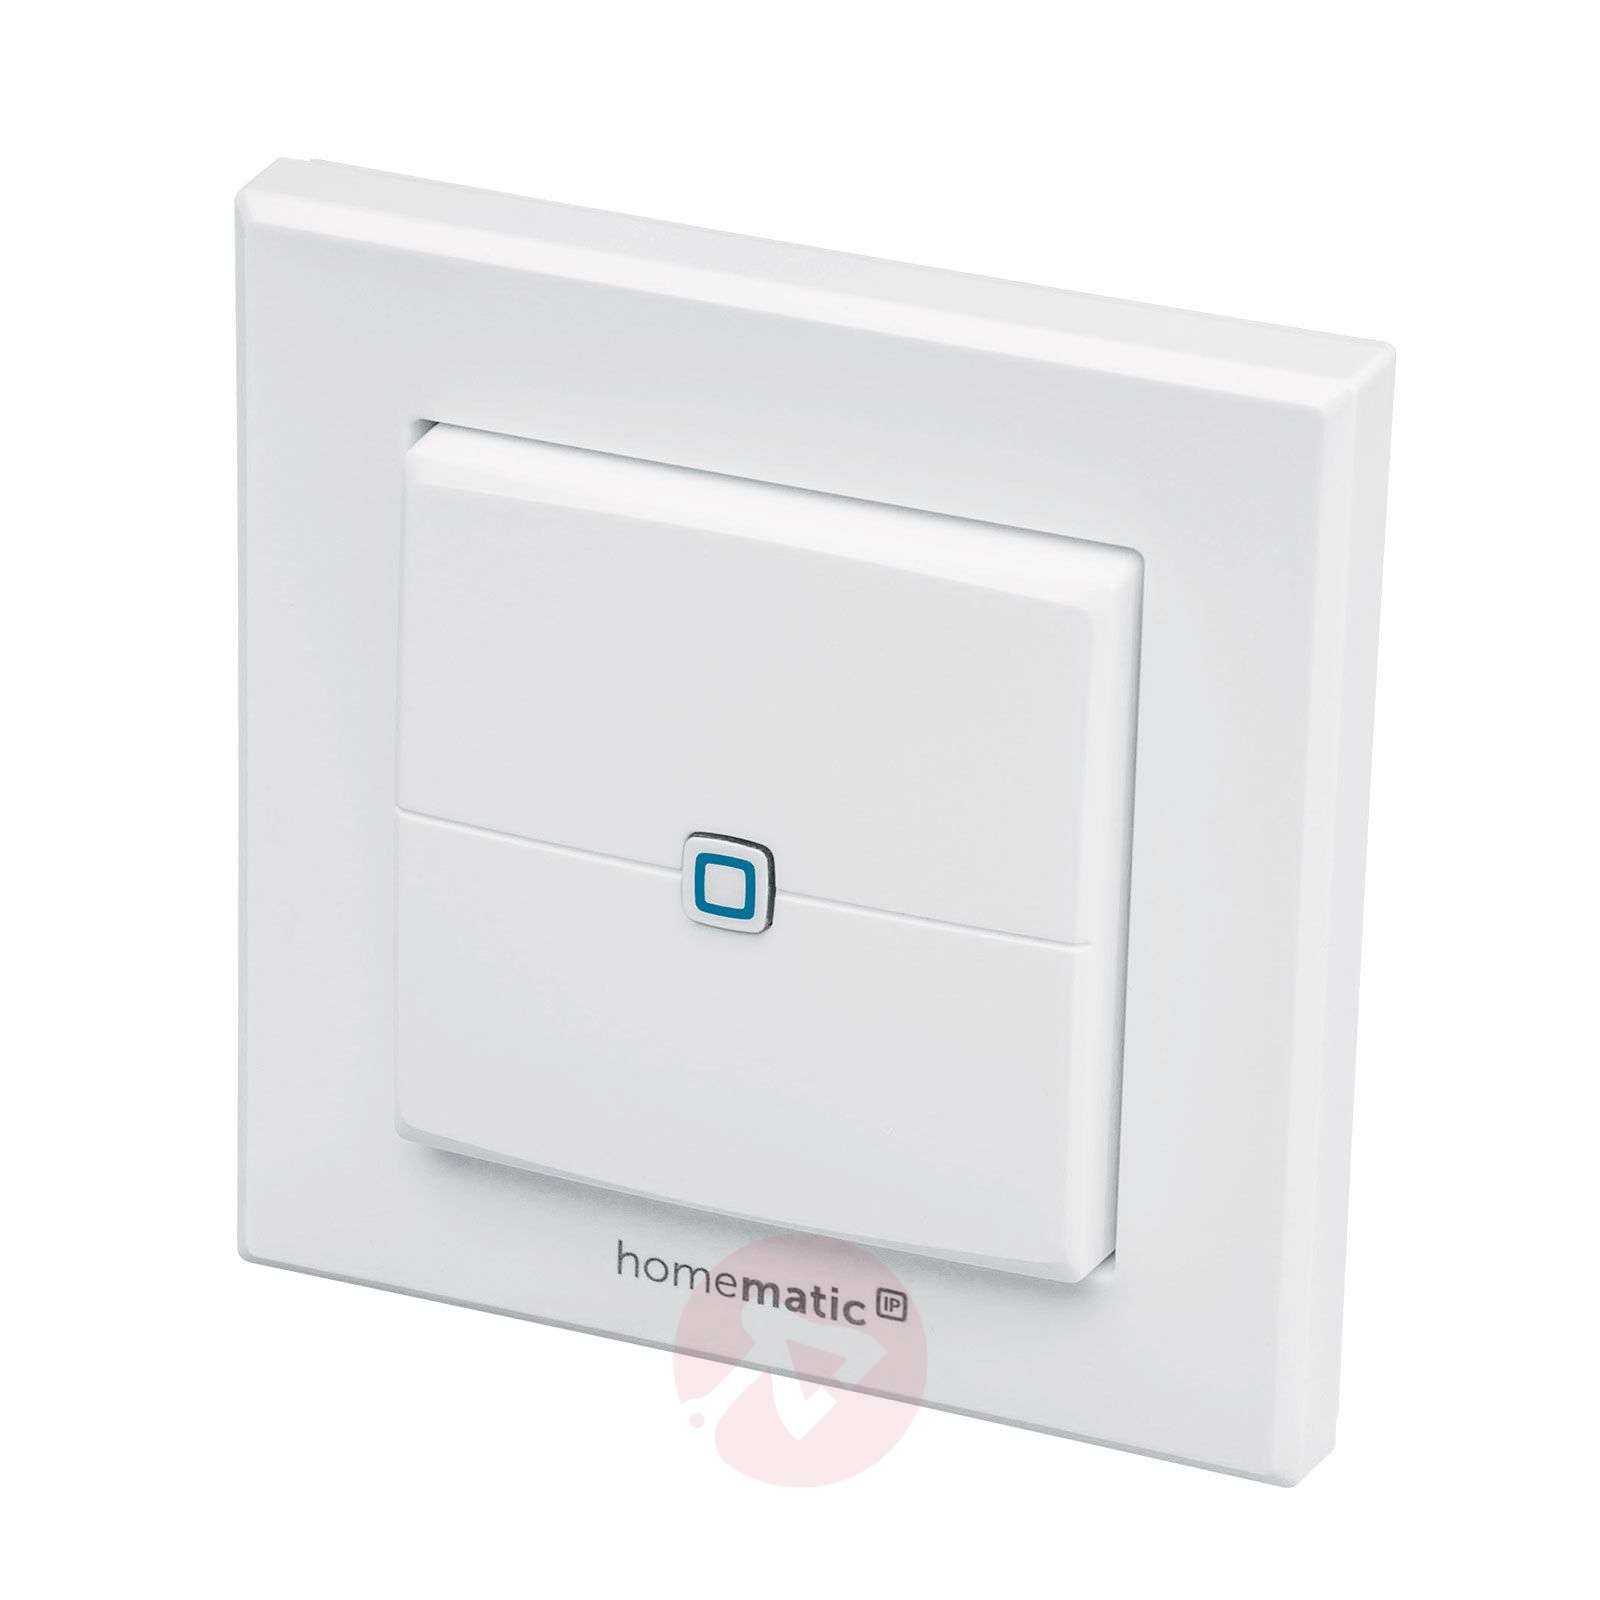 Homematic IP interruptor de pared, doble-3067022-01